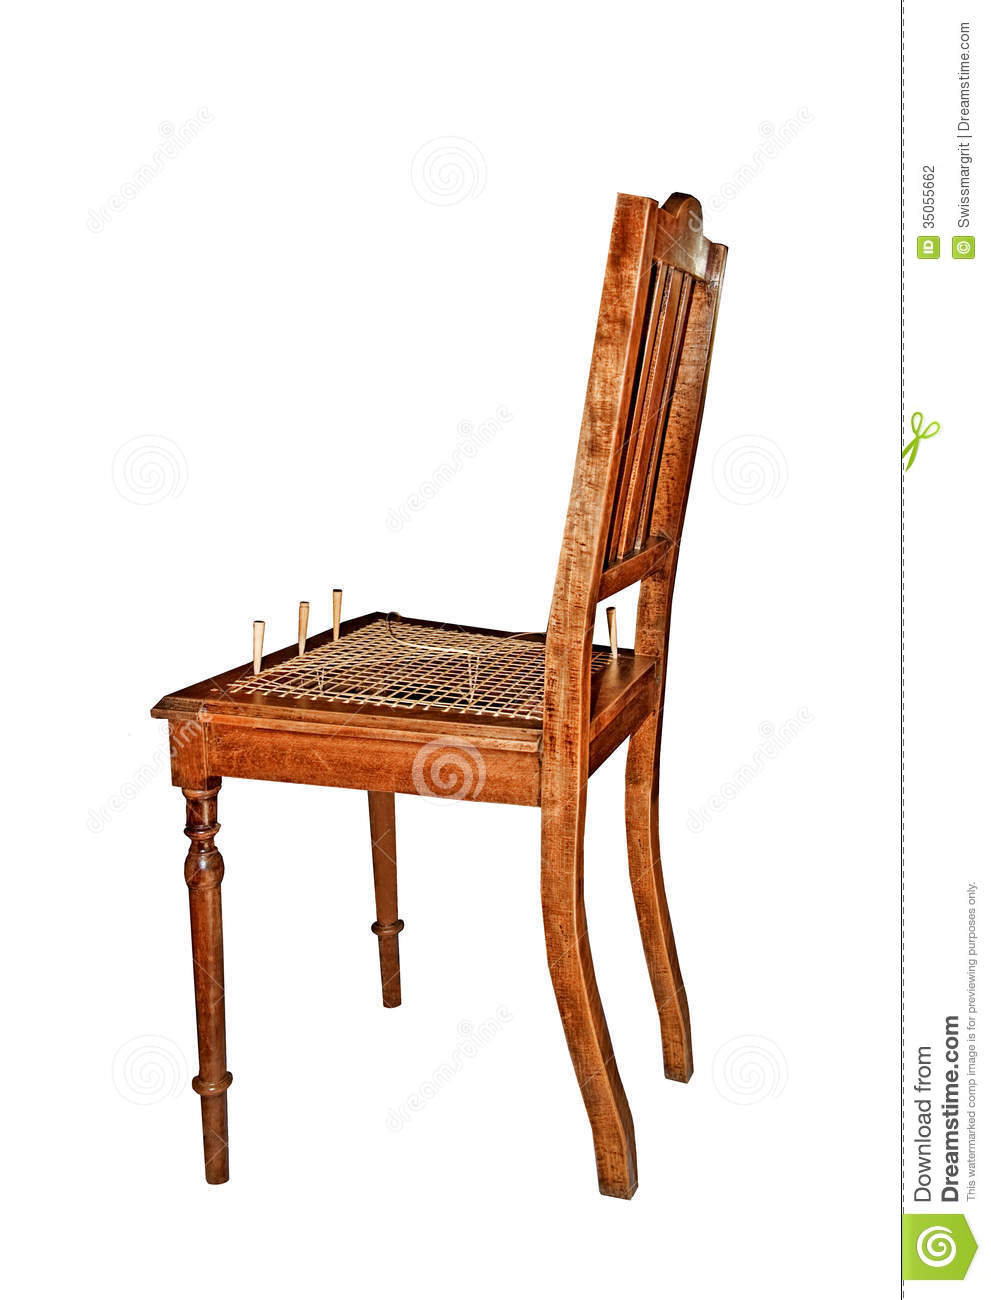 Recaning old wooden chair stock photography image 35055662